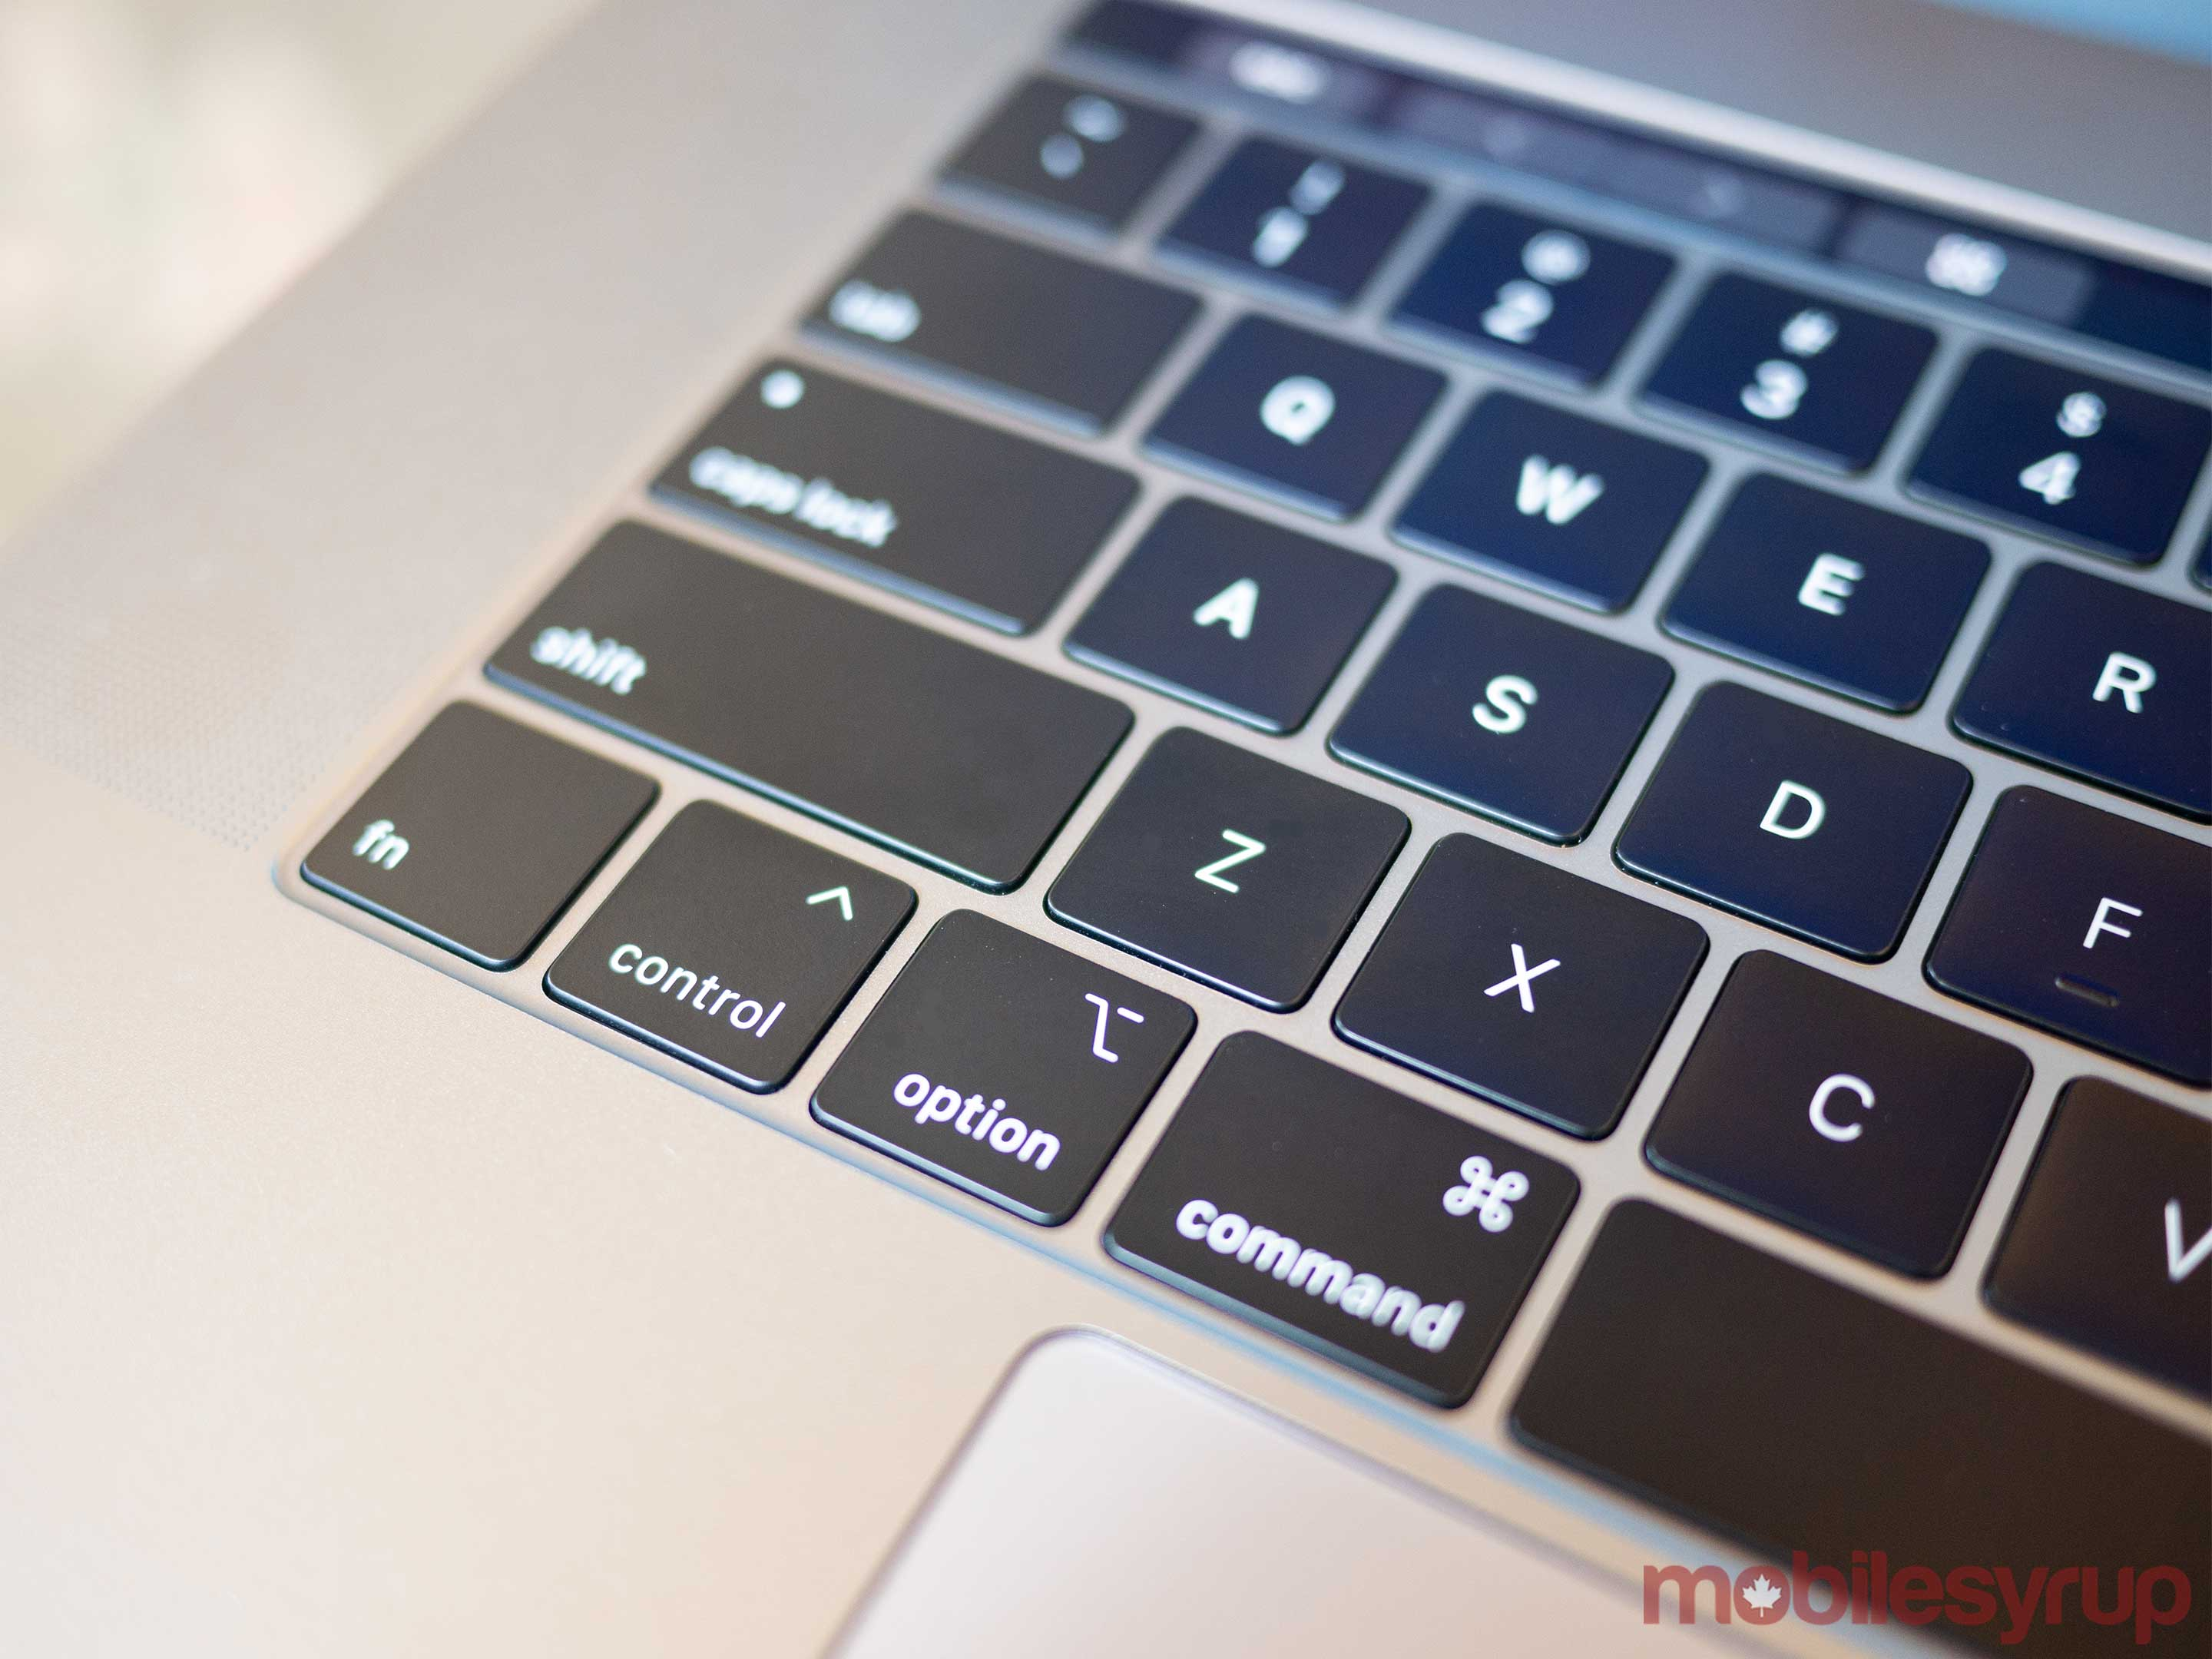 MacBook Pro 2018 keyboard